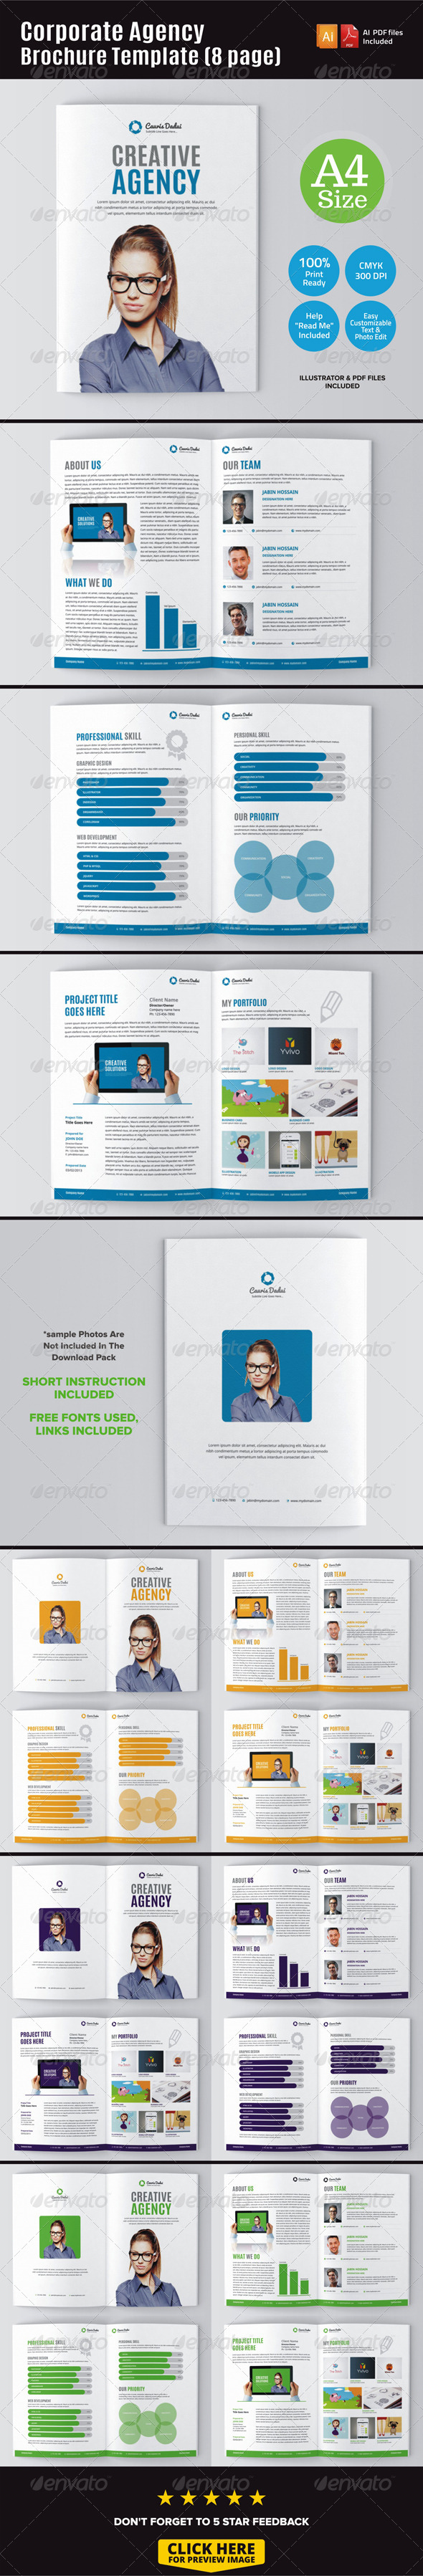 GraphicRiver Corporate Agency Brochure Template 8 Page 7278644